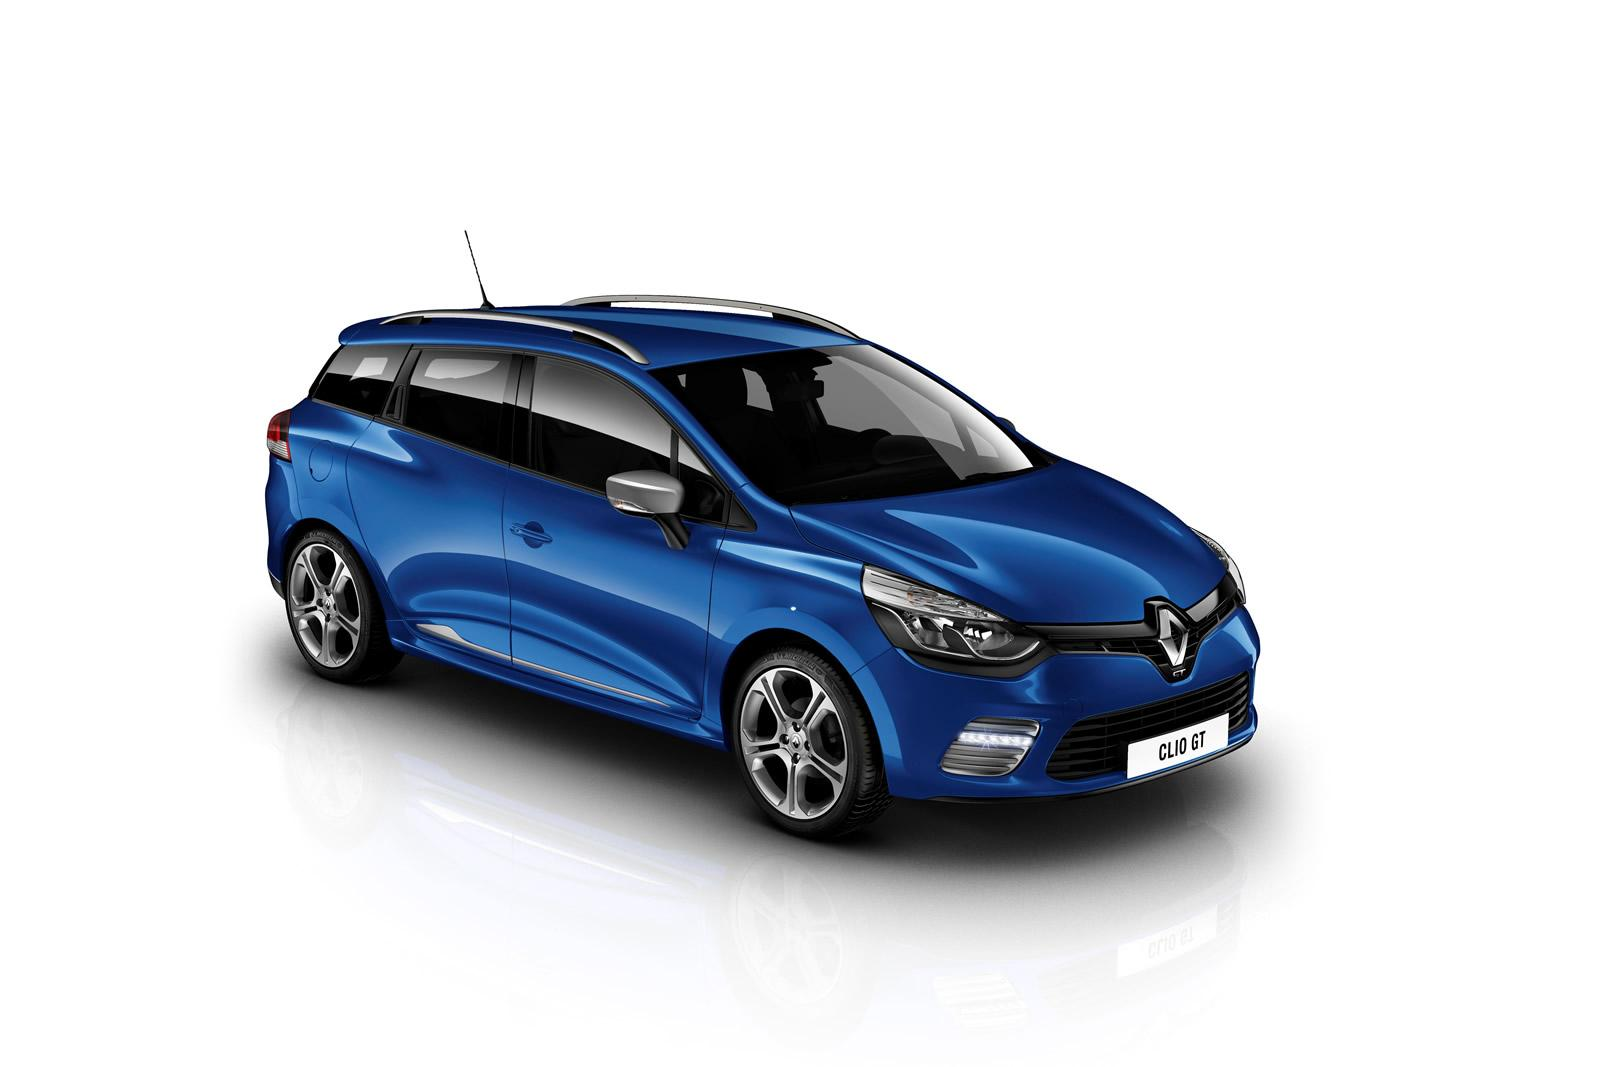 renault clio estate gt specs 2013 2014 2015 2016. Black Bedroom Furniture Sets. Home Design Ideas